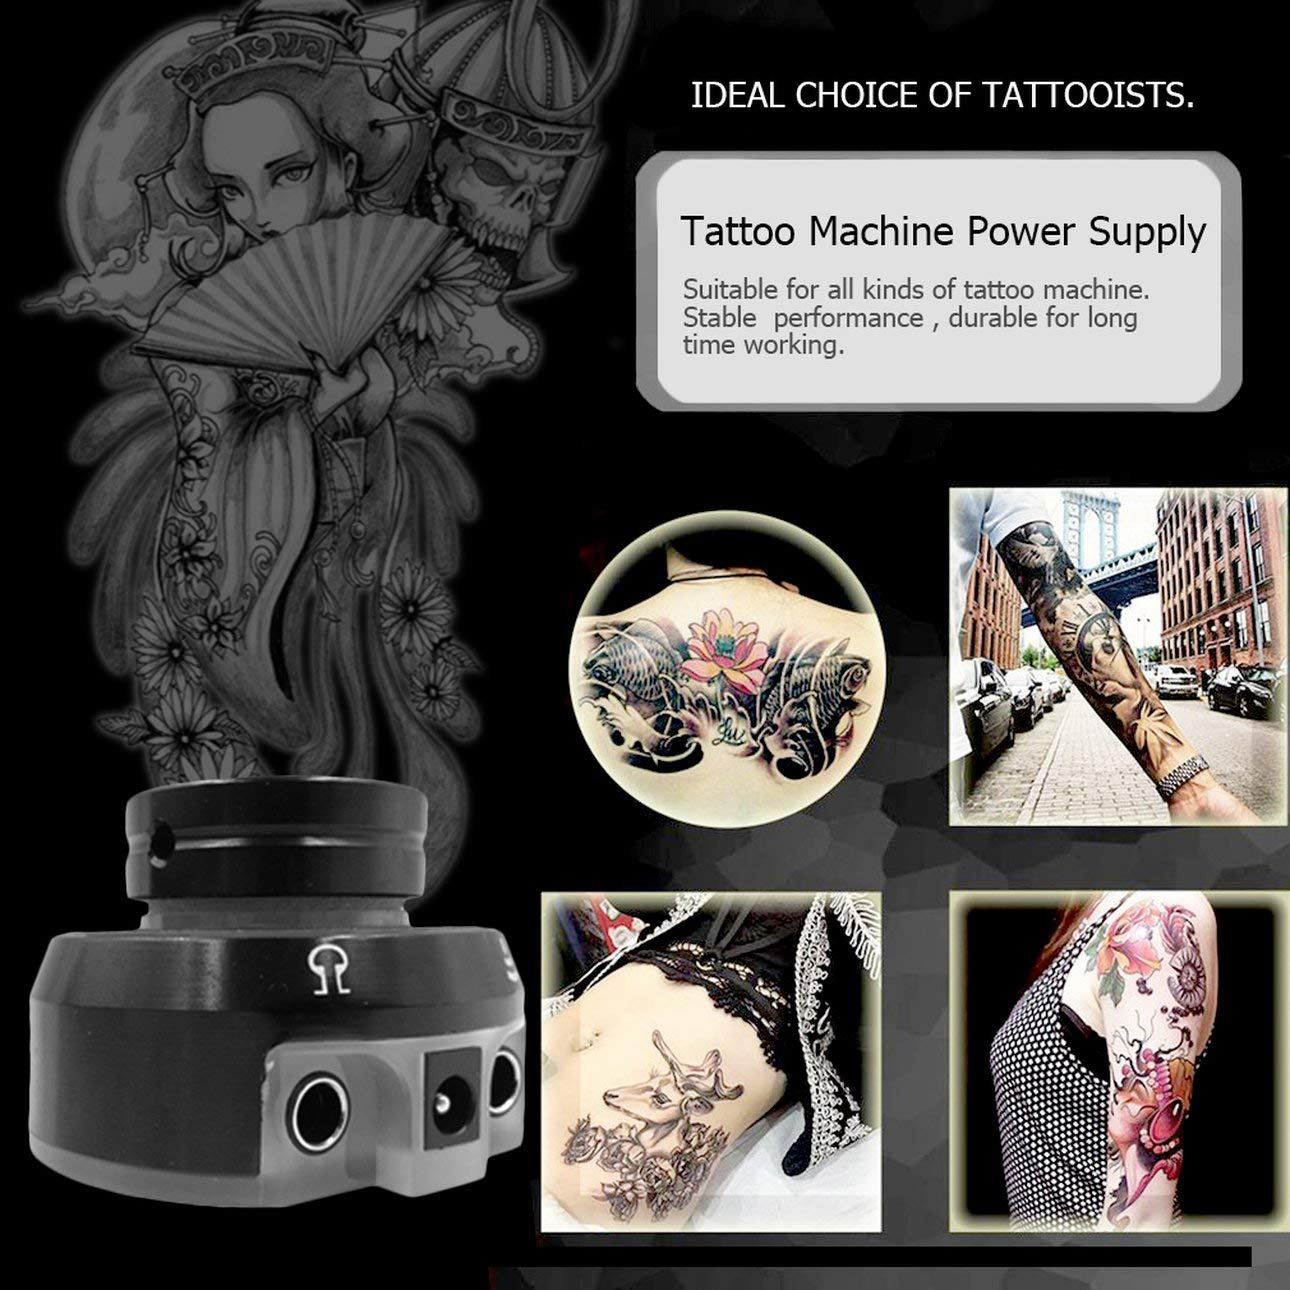 Amazon.com : Liobaba Colorful Rainbow Change Color Voltage Tattoo Power Supply Aluminum Alloy Rotary Switch Professional Tattoo Machines Supplies : Beauty